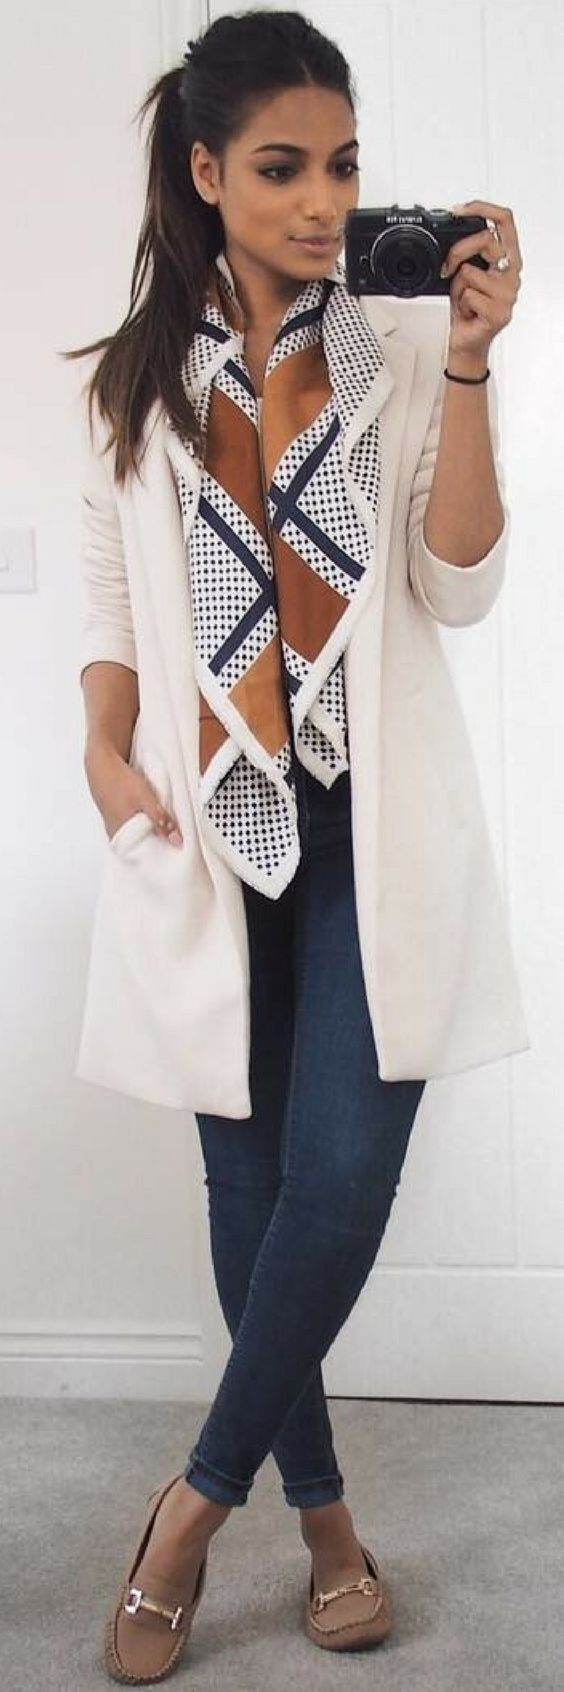 #fall #outfits women's whiet coat and blue jeans outfit